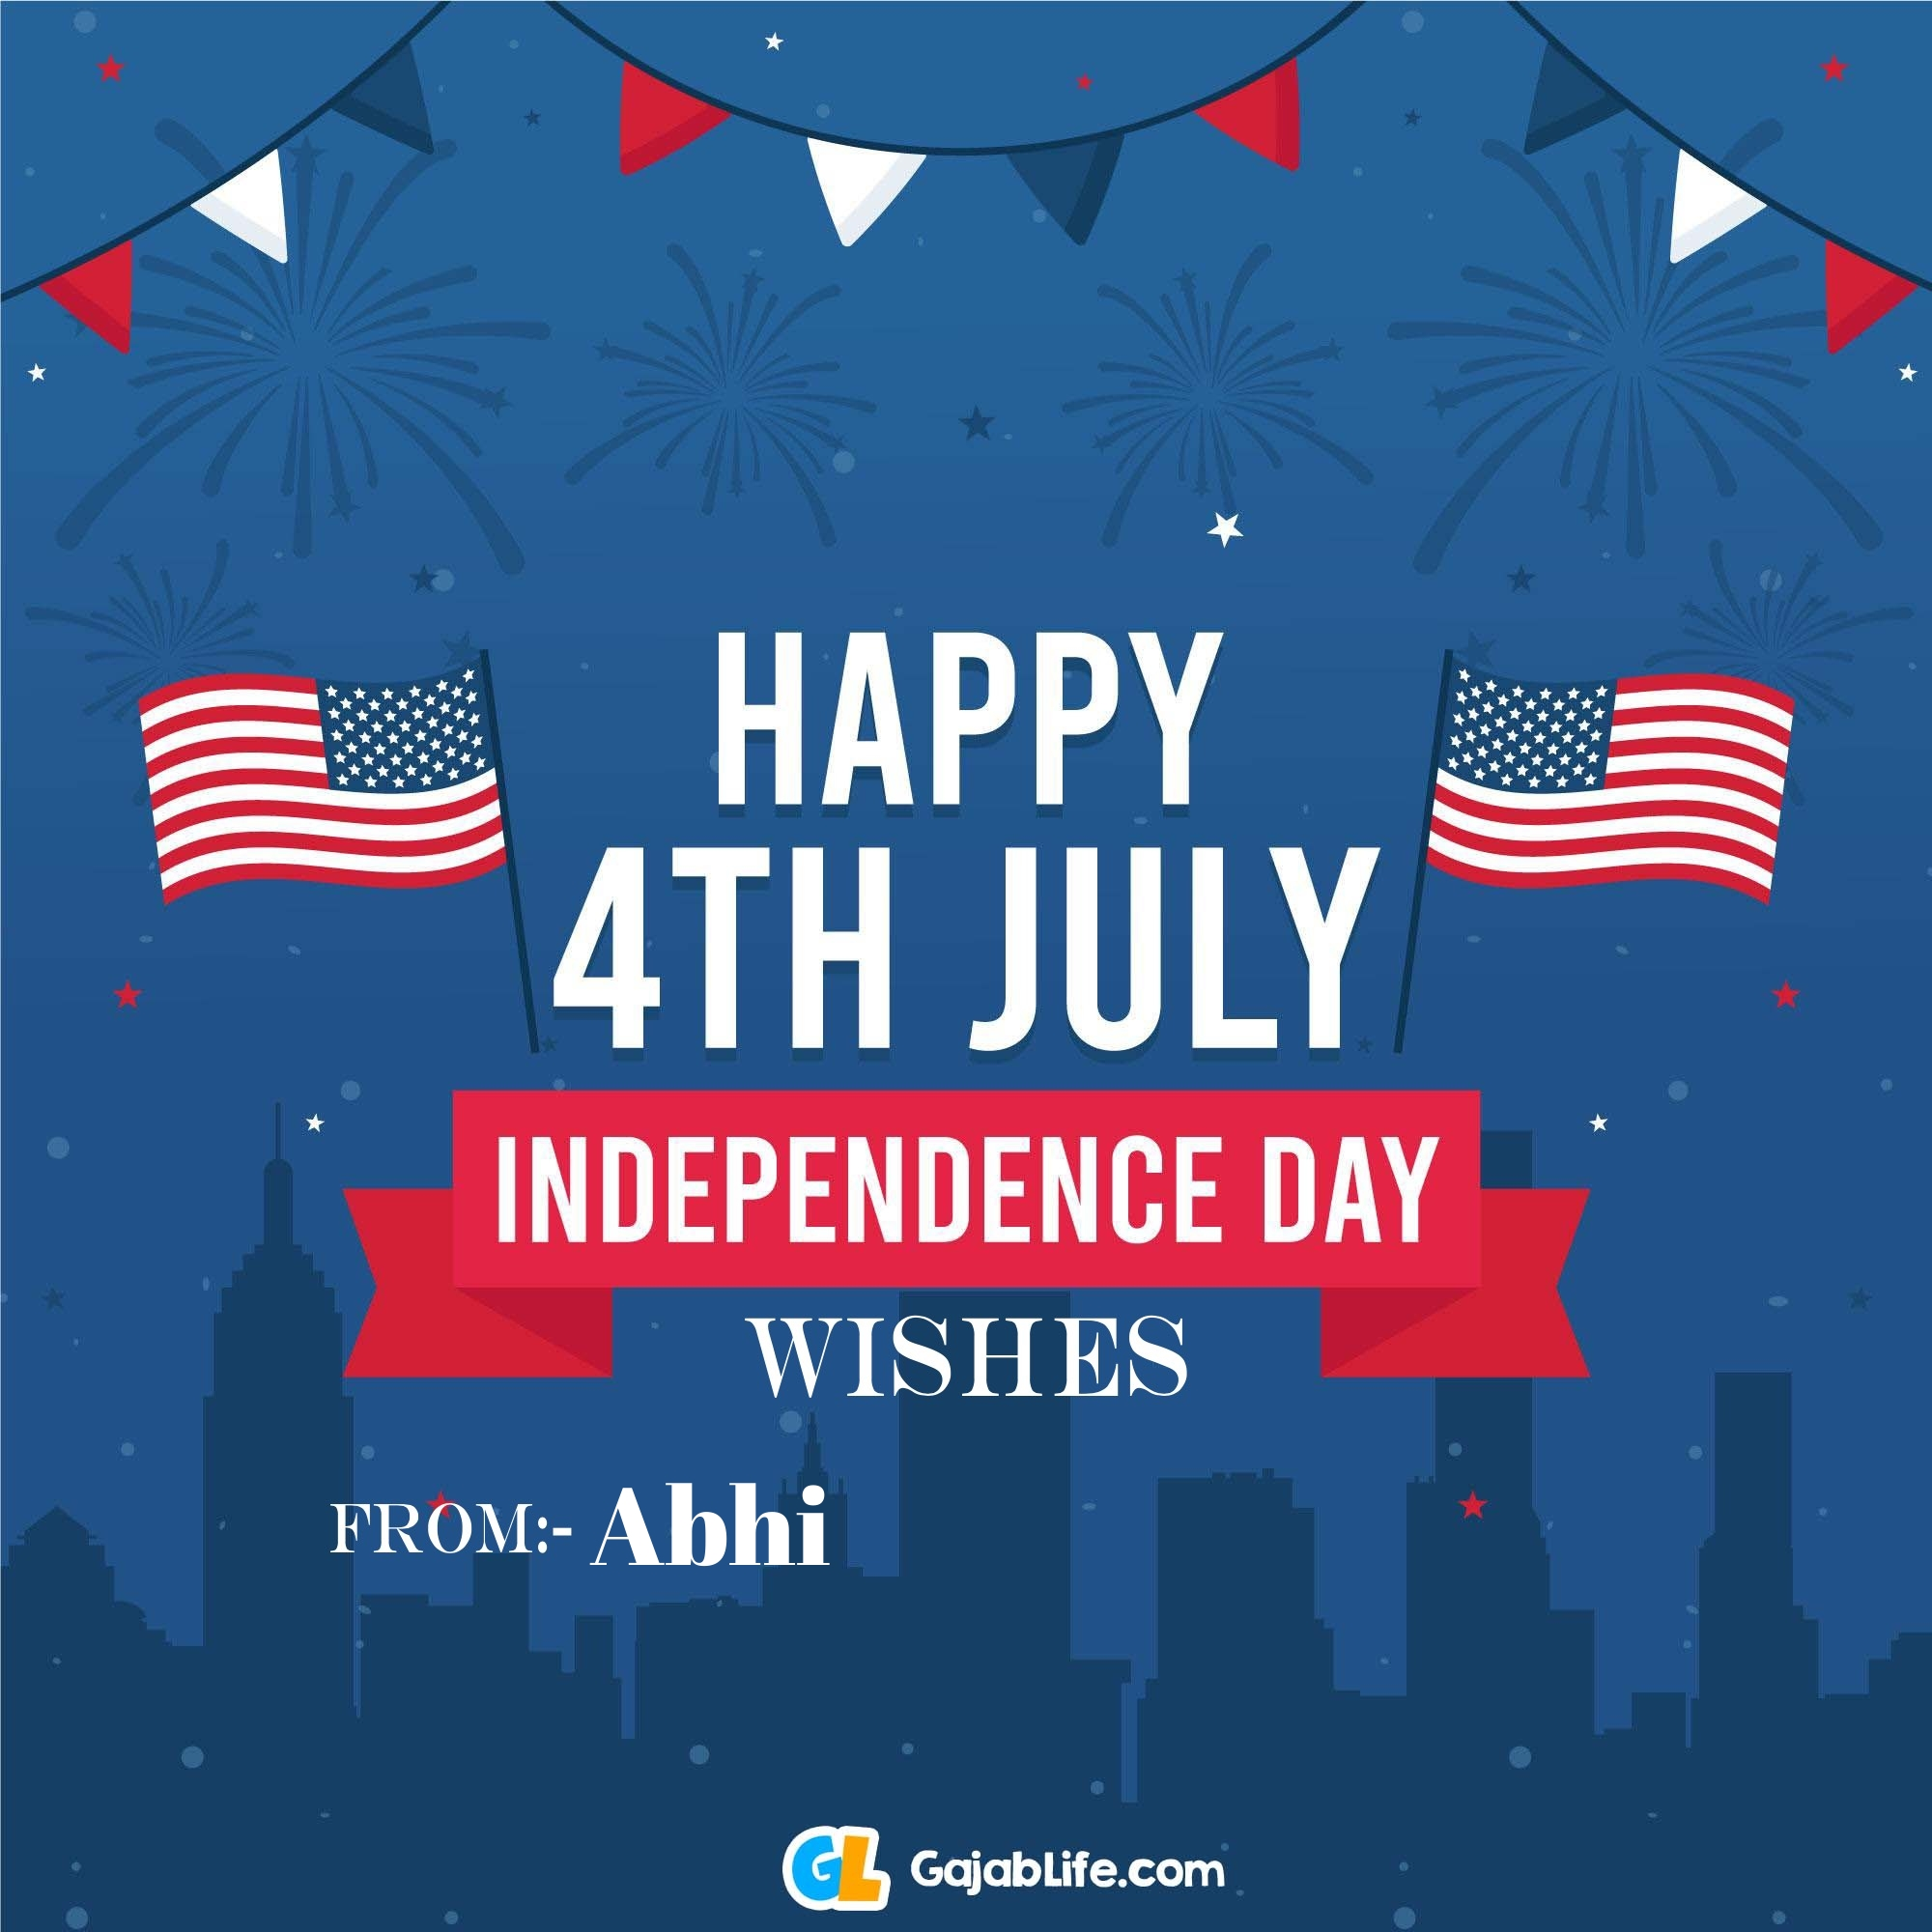 Abhi happy independence day united states of america images